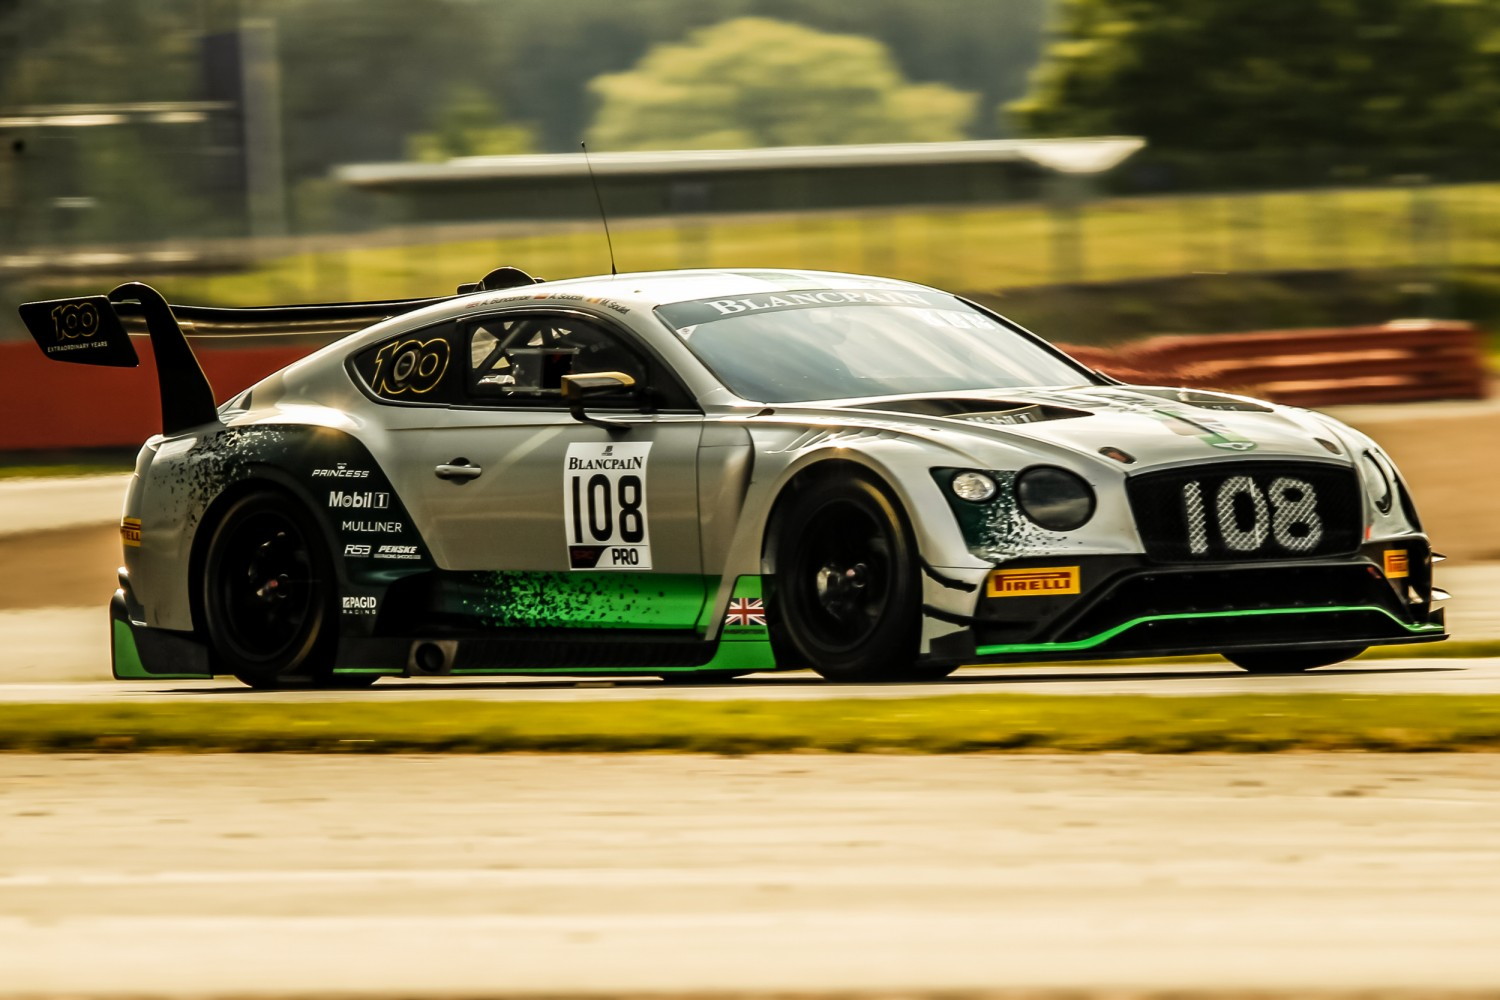 #108 Bentley Team M-Sport GBR Bentley Continental GT3 Alex Buncombe GBR Andy Soucek ESP Maxime Soulet BEL -  | SRO / Patrick Hecq Photography